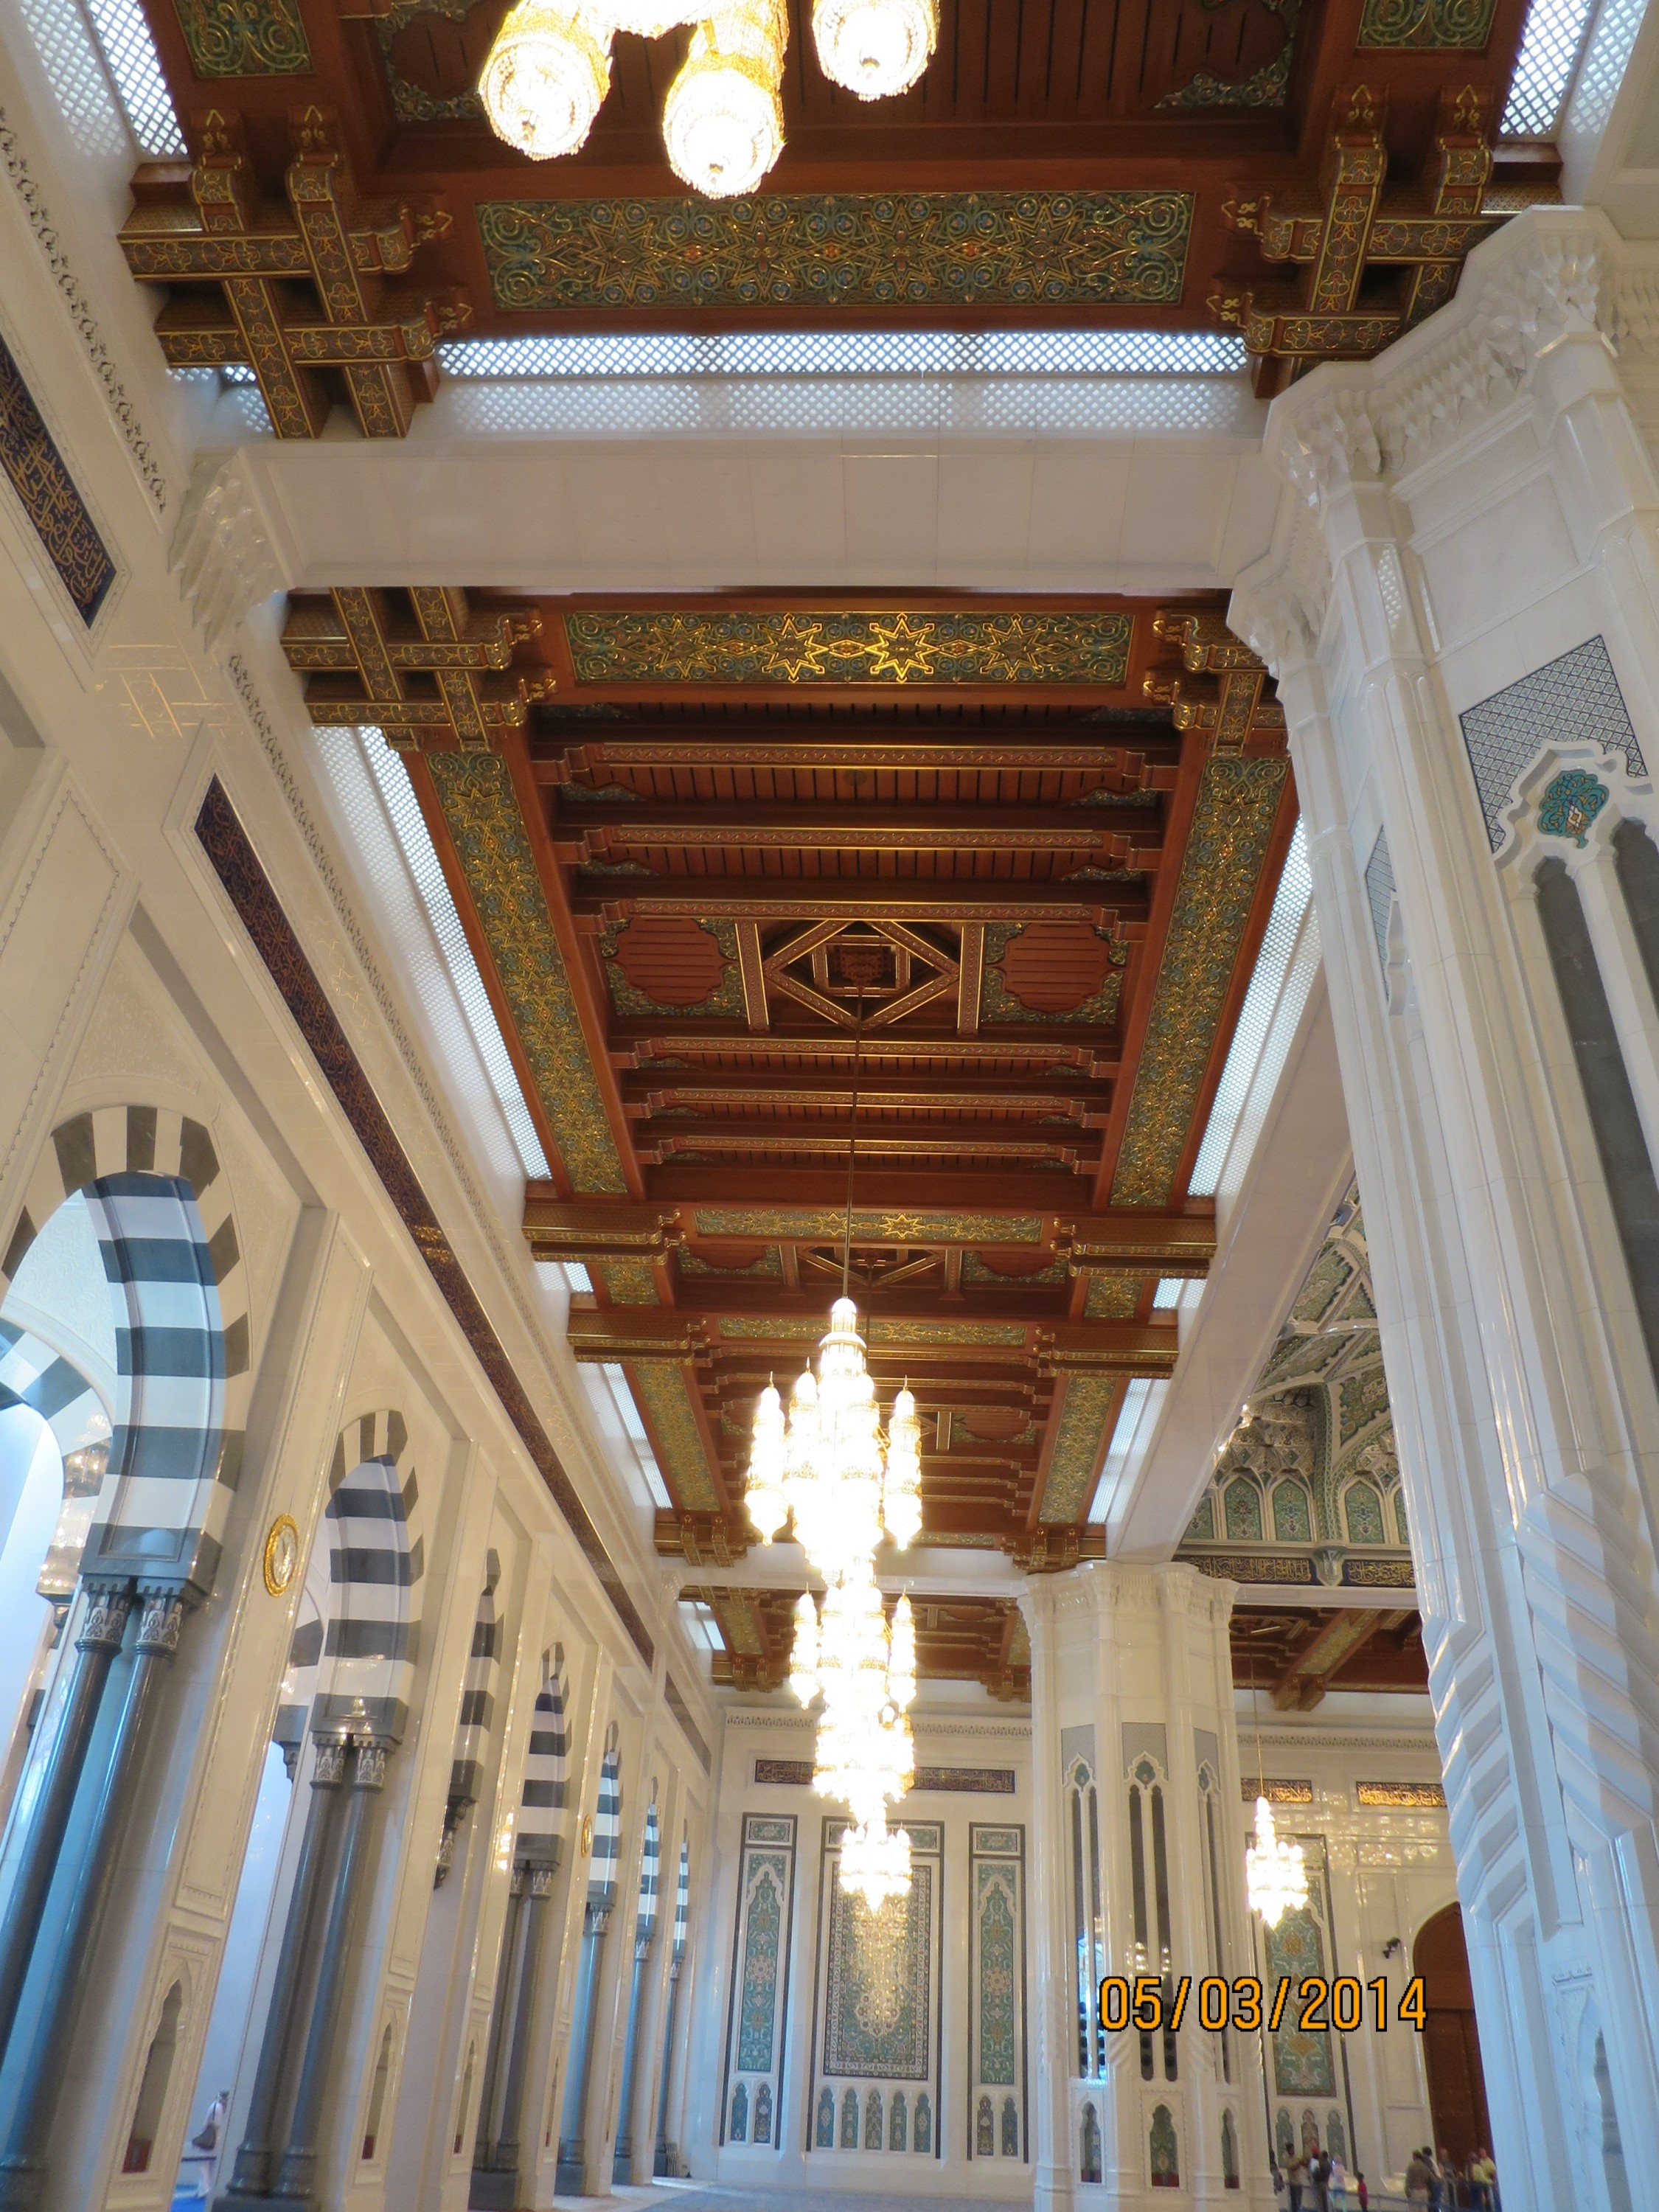 timbered panels reflects the architecture of Omani ceilings